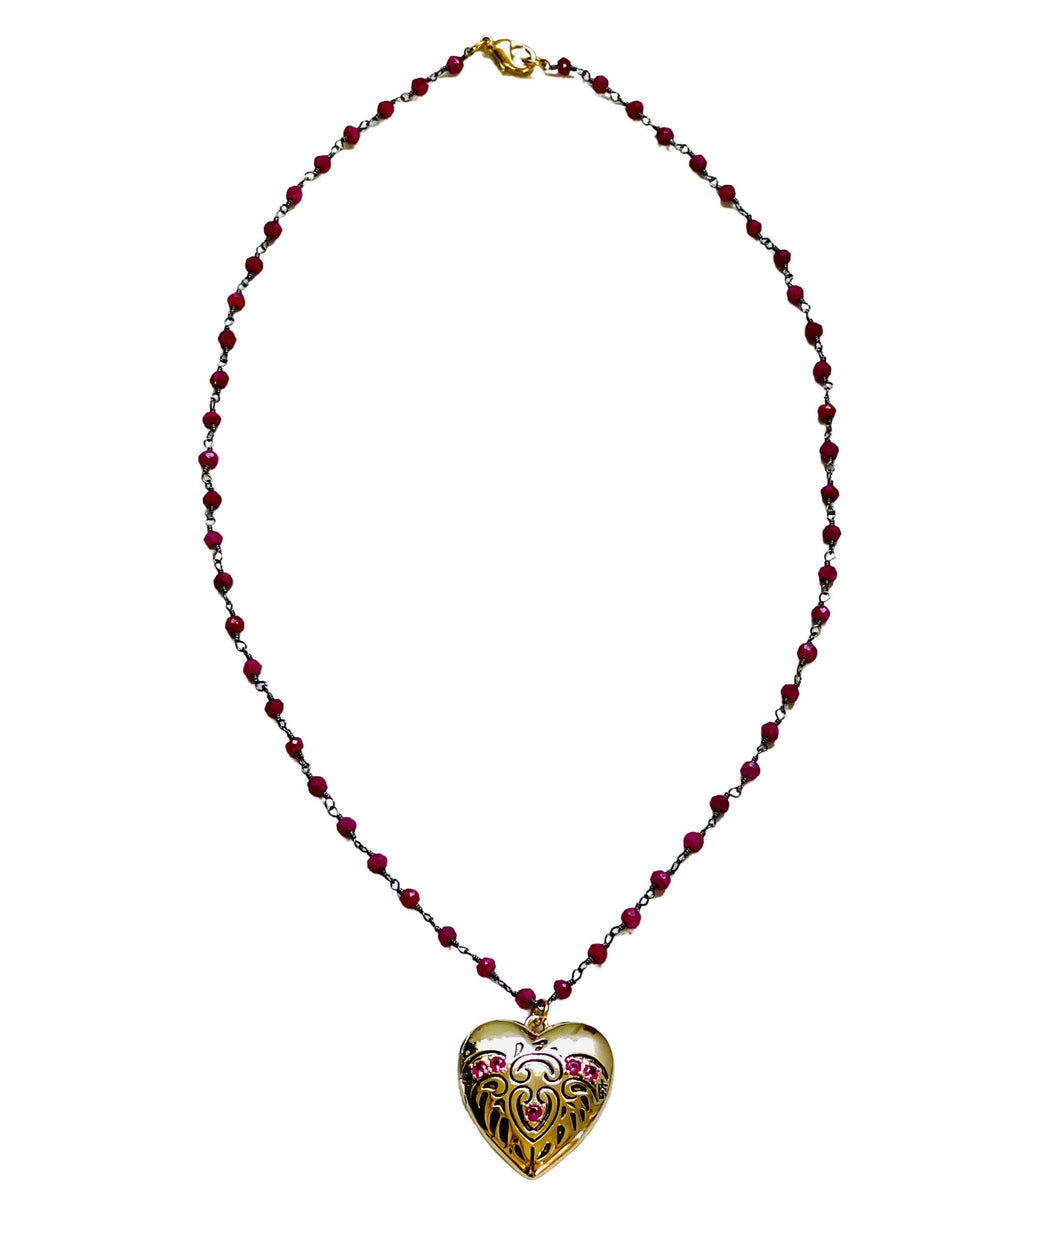 Ruby Heart Locket with Wire Wrapped Ruby Stones Necklace